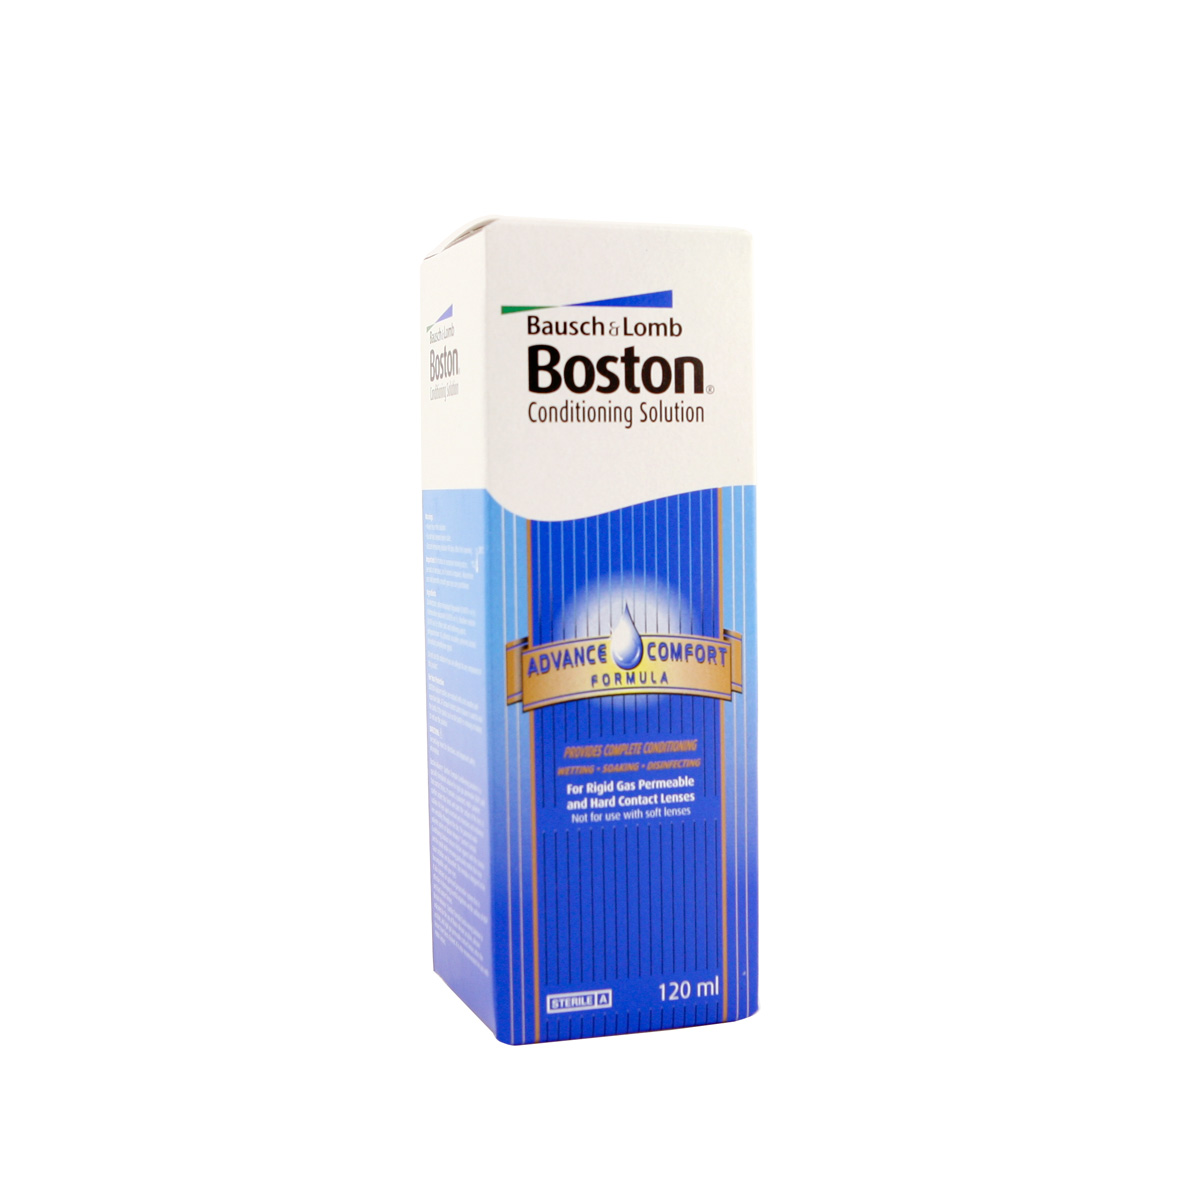 Boston Conditioning Solution (120ml)